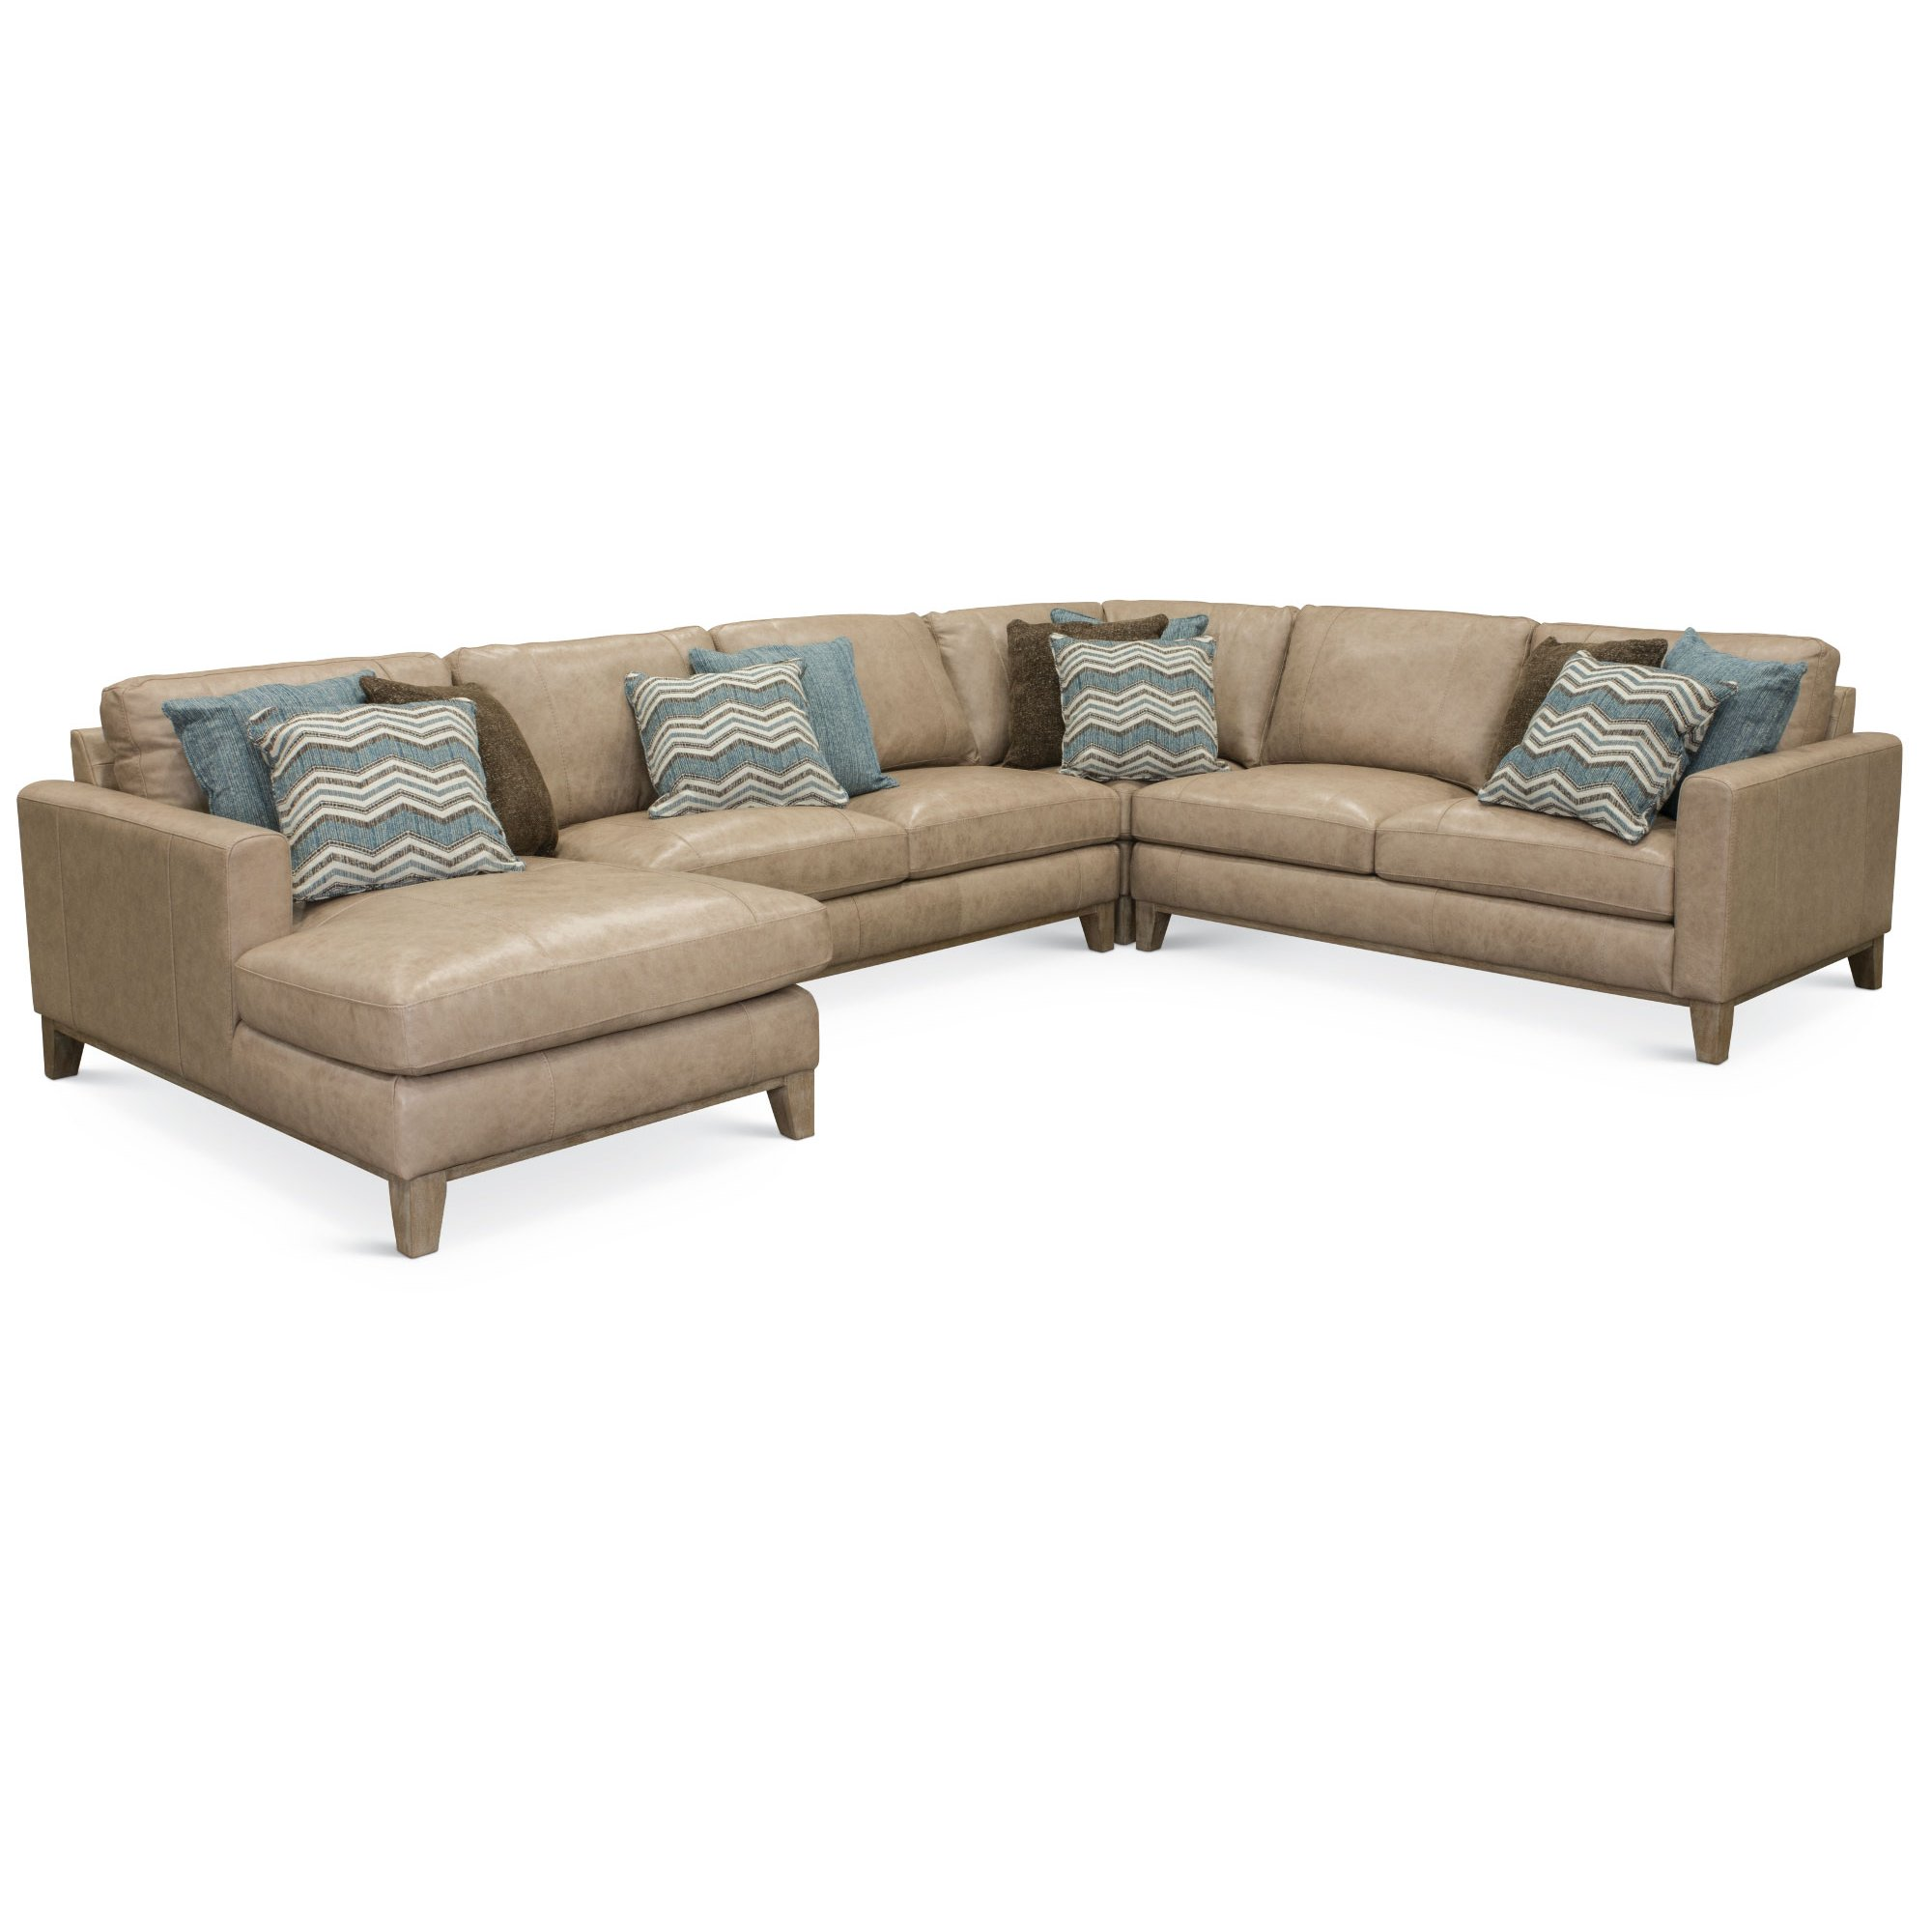 Sand Leather 4 Piece Sectional Sofa With Laf Chaise Mutual